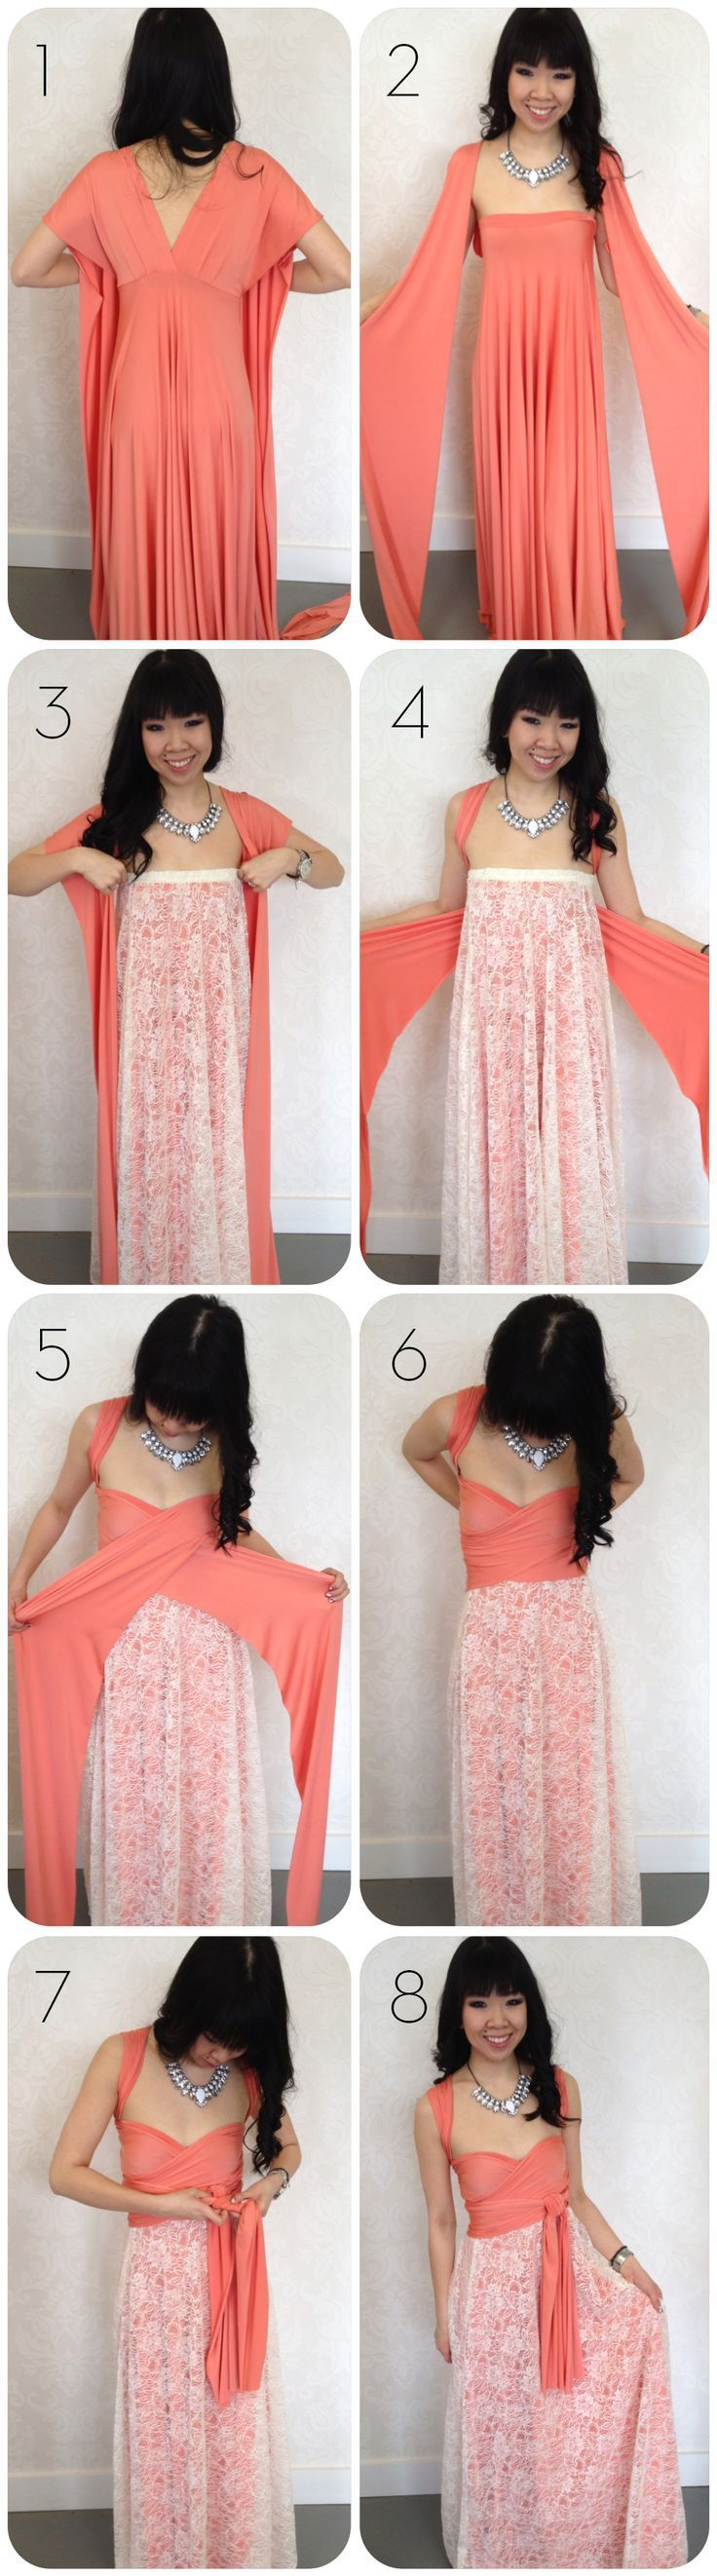 I have included four pictorials on how to use a scarf to create a crop top, vest, skirt or part of a dress. I personally would like to try to create the vest. Which one do you think is the most cre…